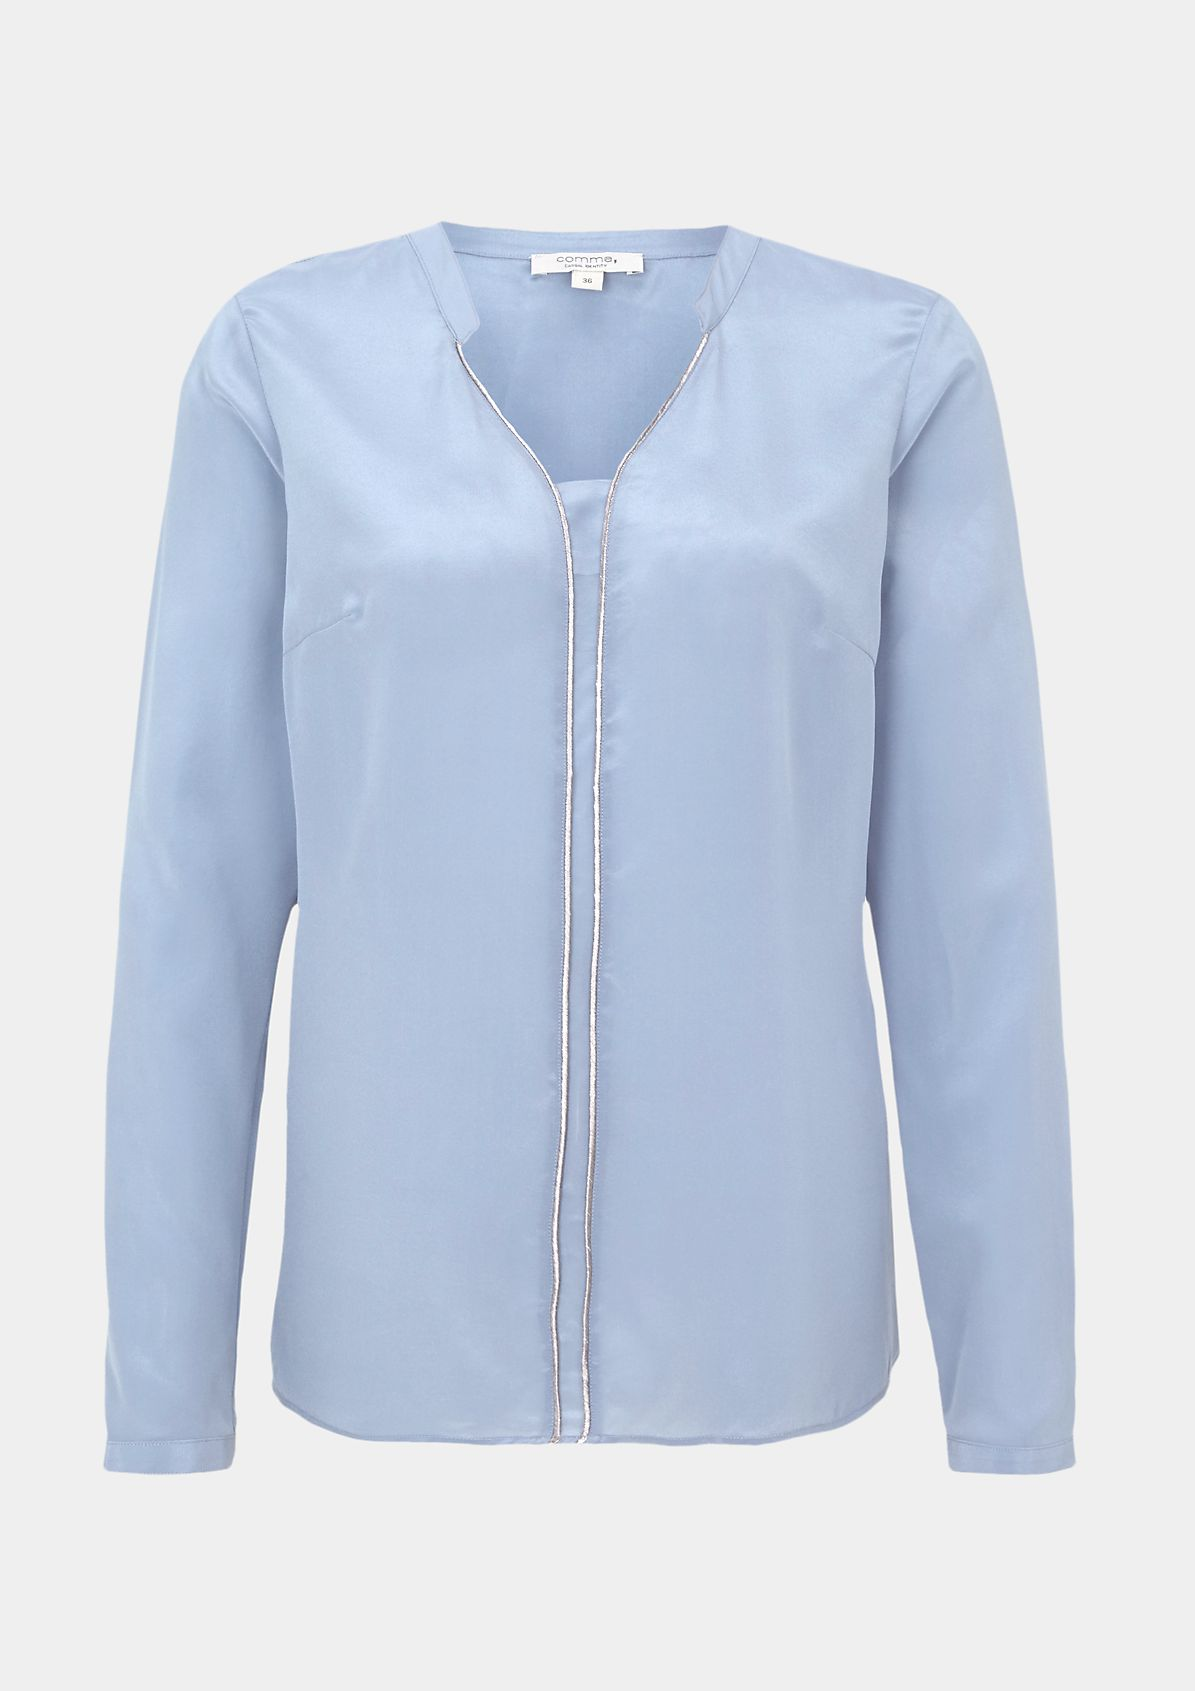 Delicate silk blouse with sophisticated details from comma